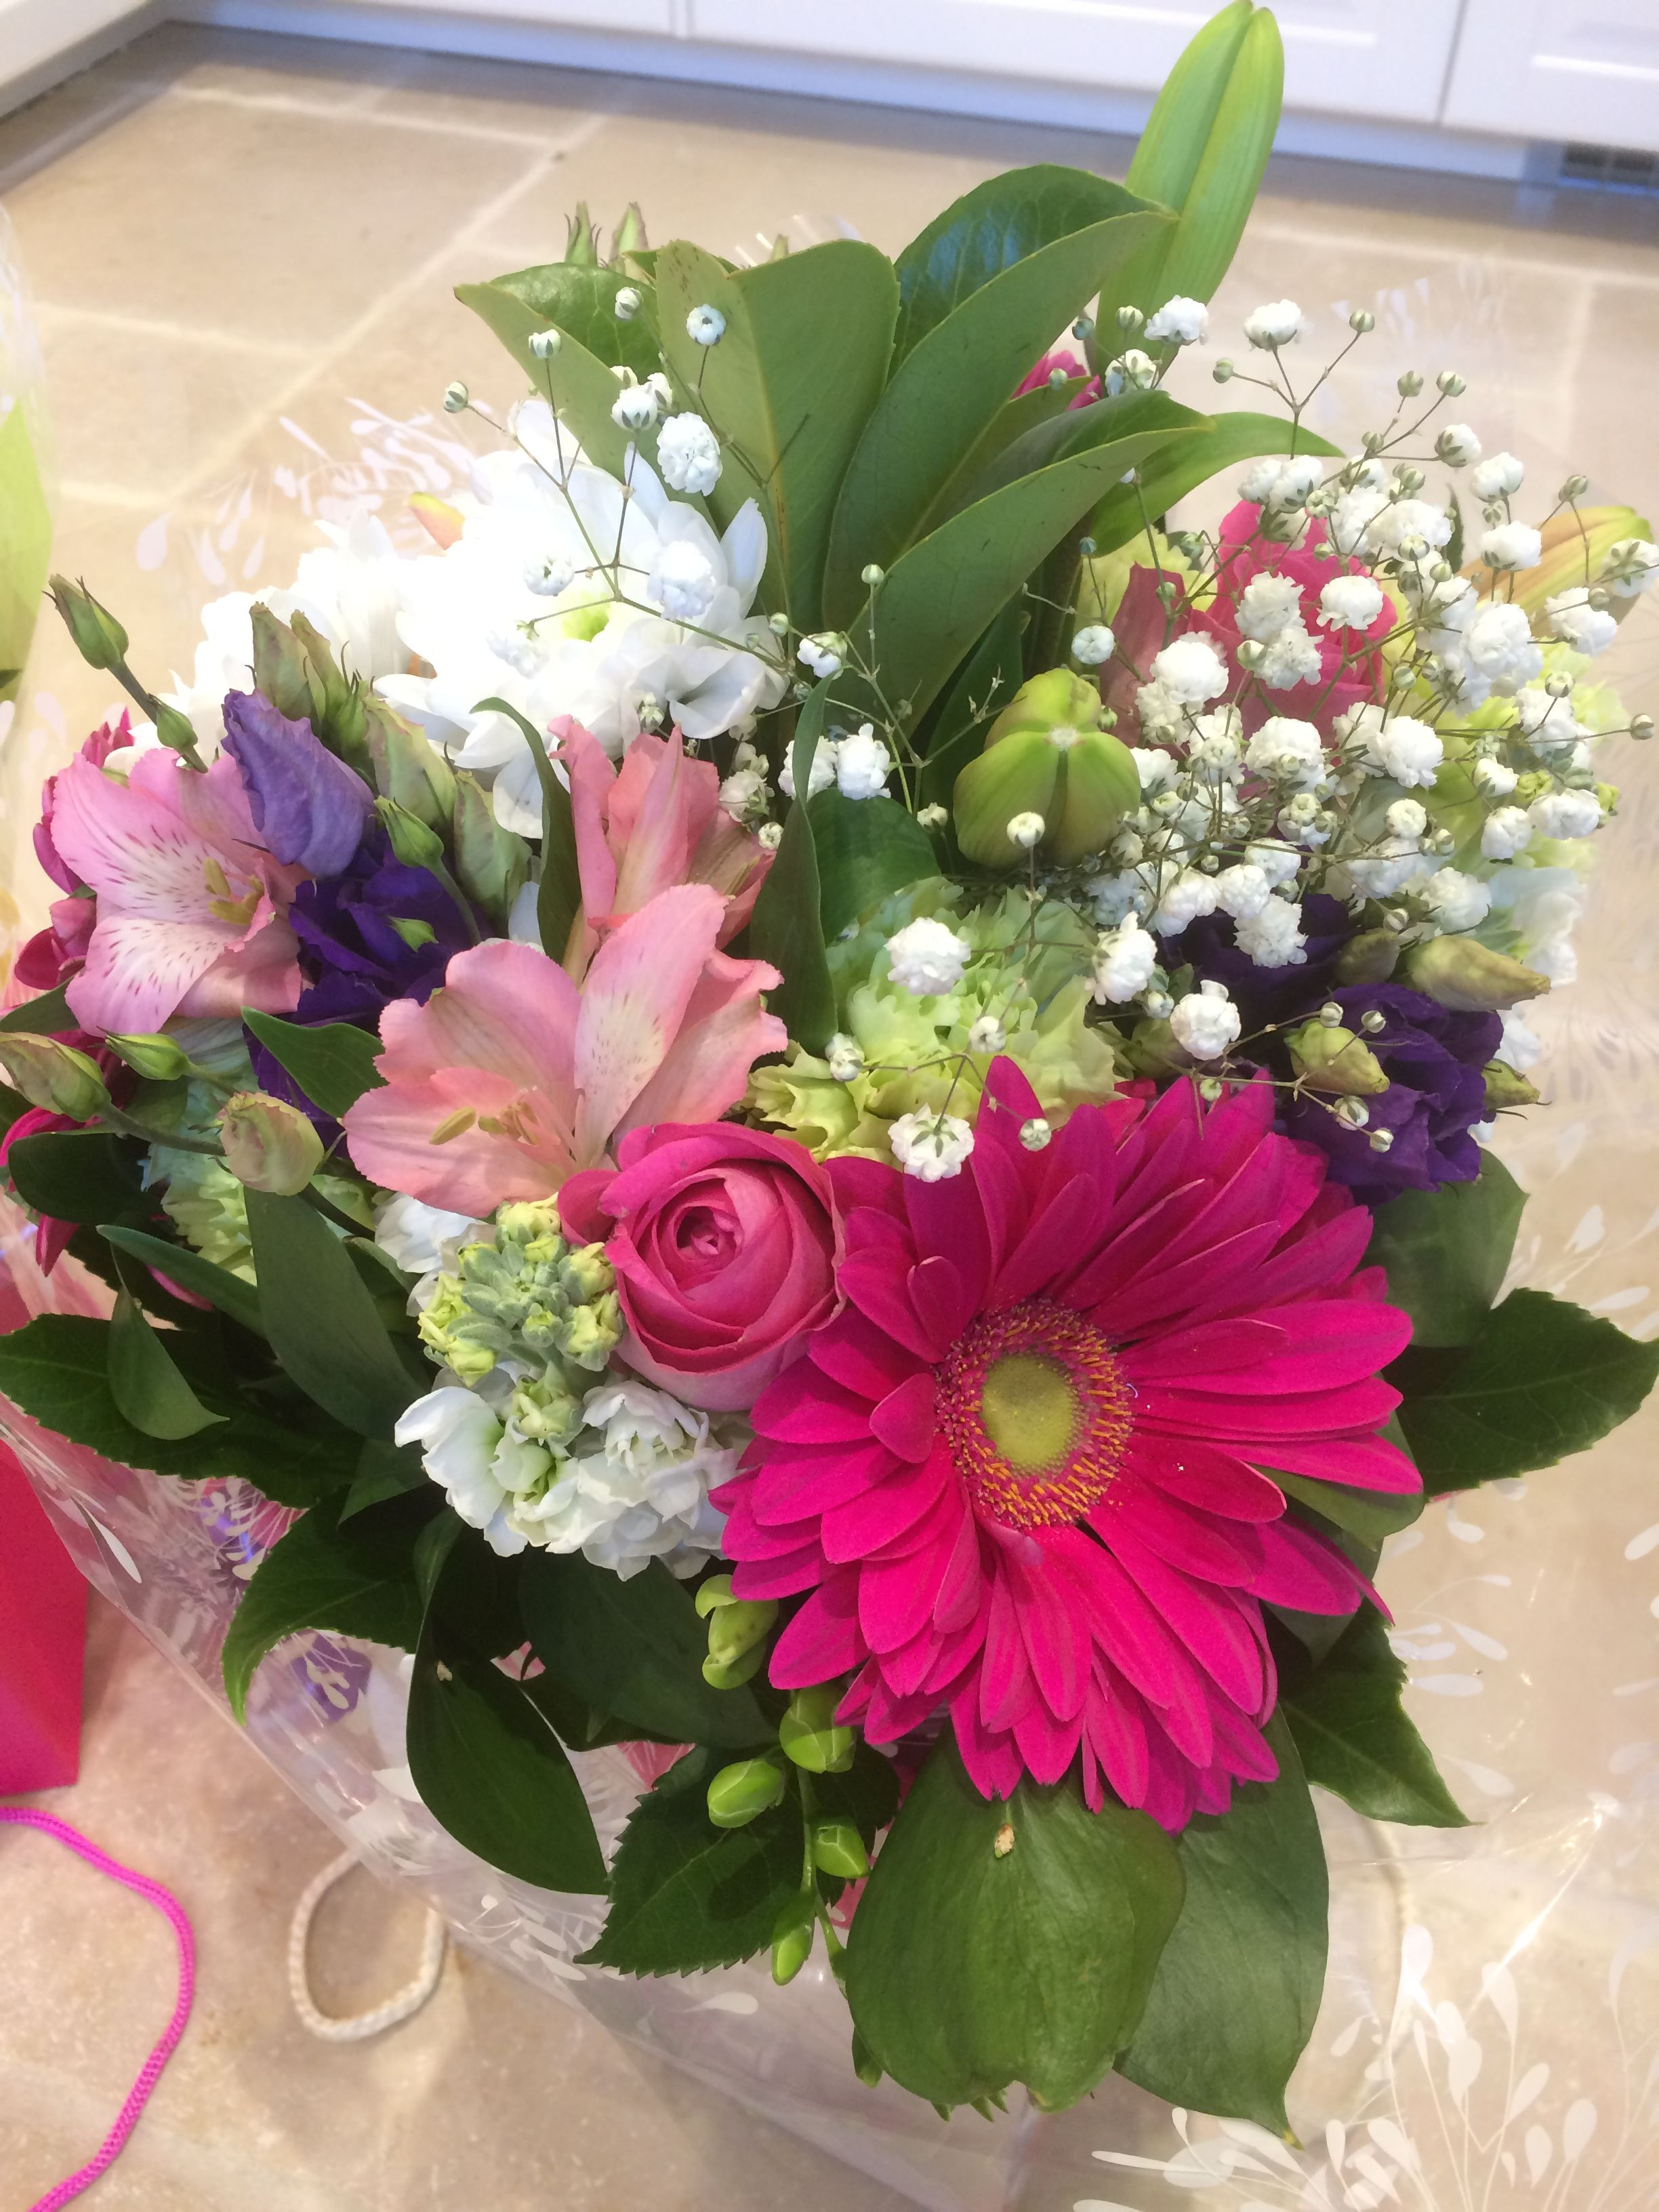 Gift bouquet of seasonal fresh flowers from willow house flowers willow house flowers aylesbury florist free same day delivery in aylesbury bucks local on line florist for next day local delivery flowers bouquets izmirmasajfo Images